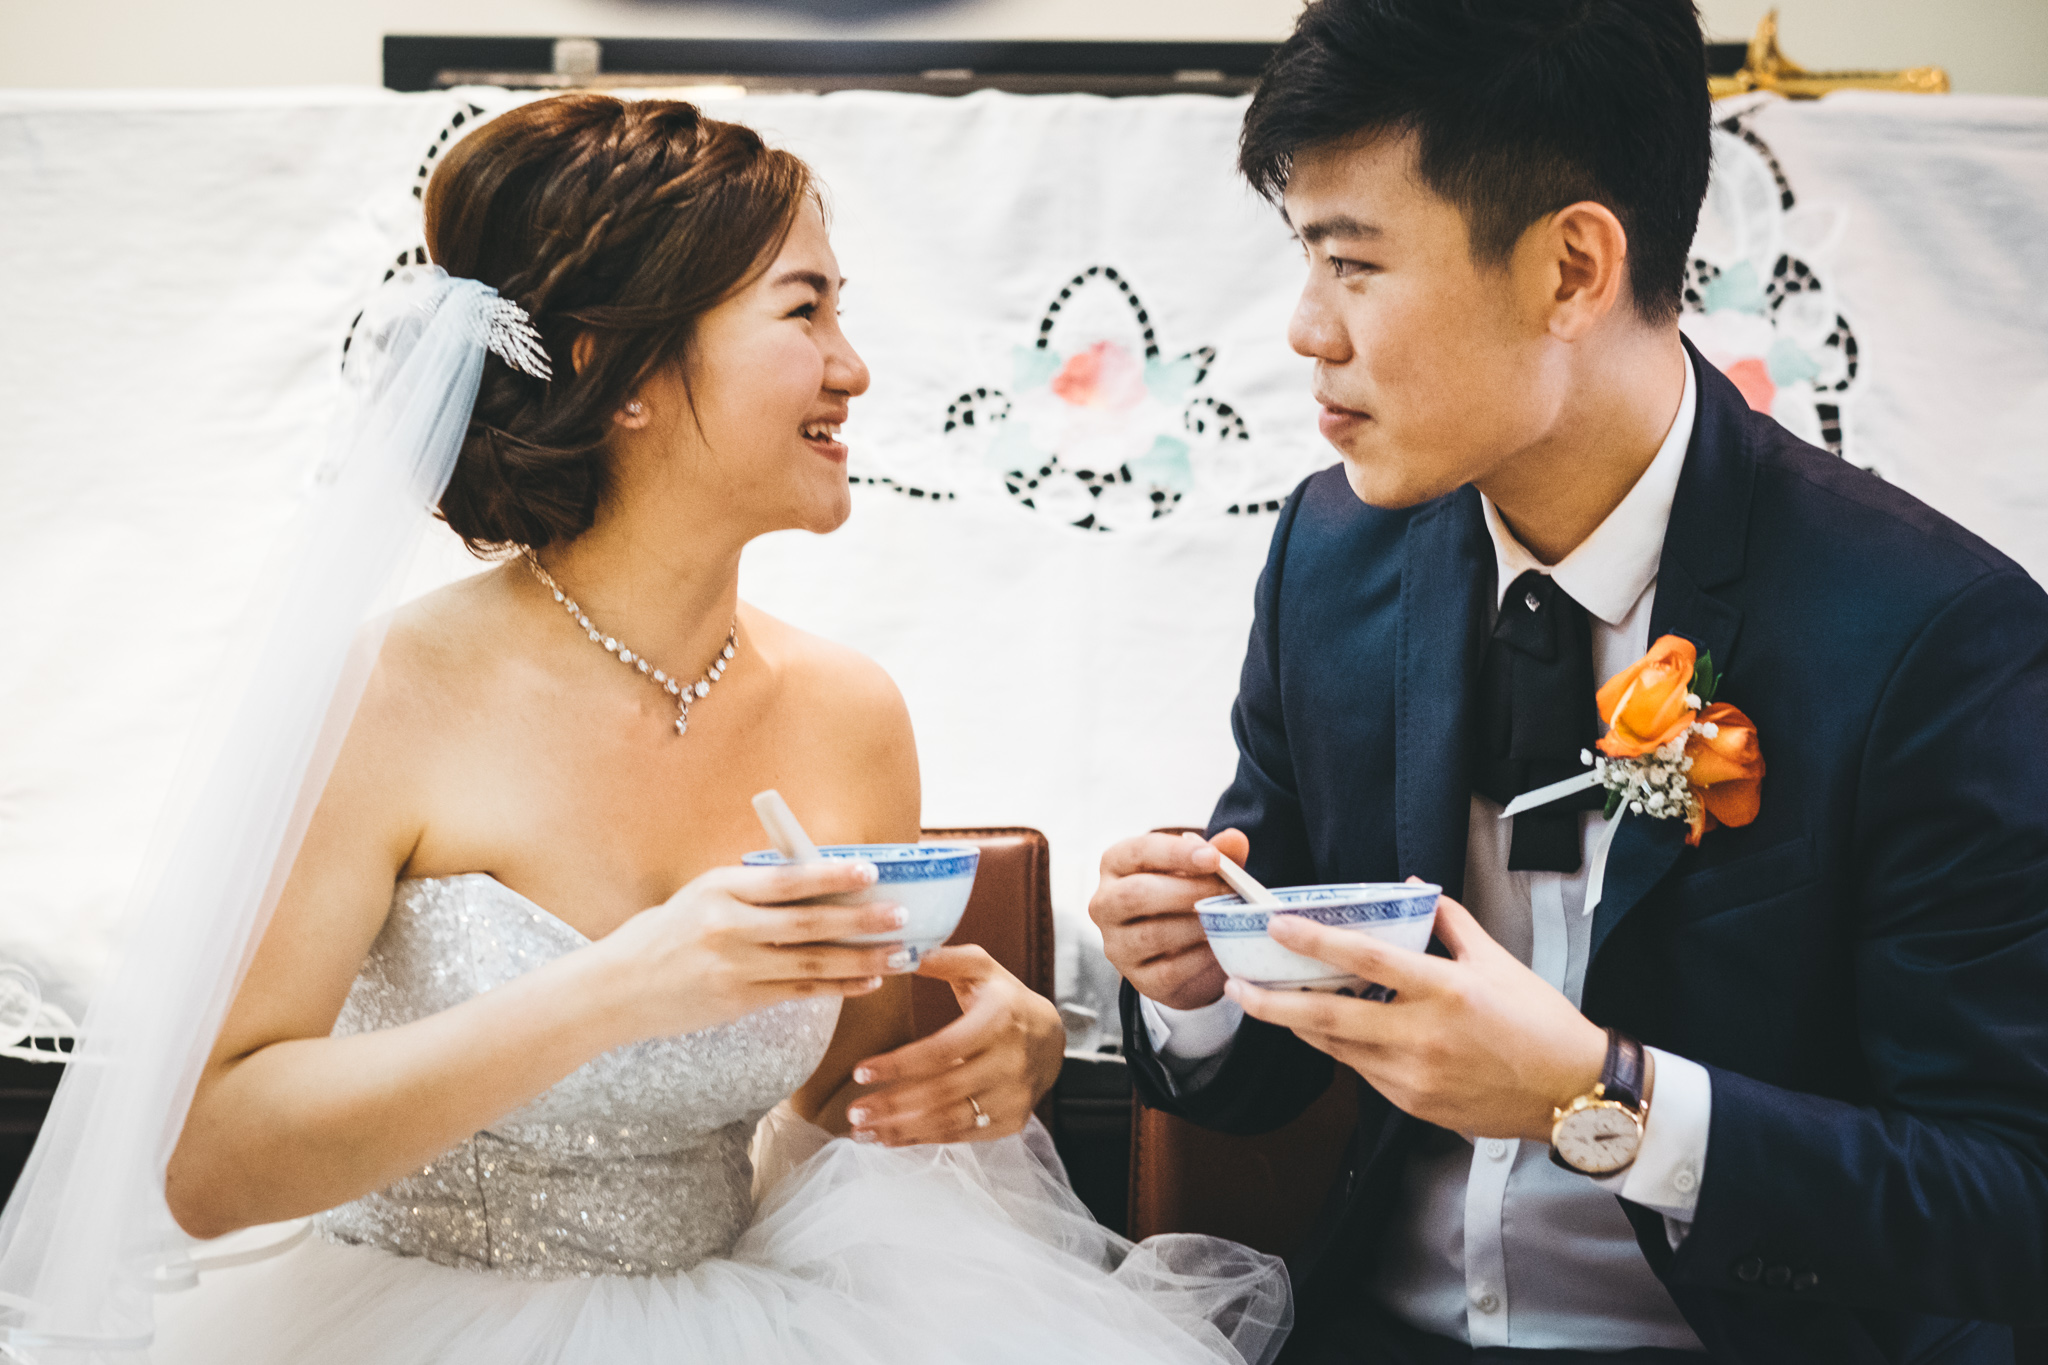 Juxtapose Pix - Wedding - Clarice & Zhengyong - changi airport crowne plaza 00023.jpg